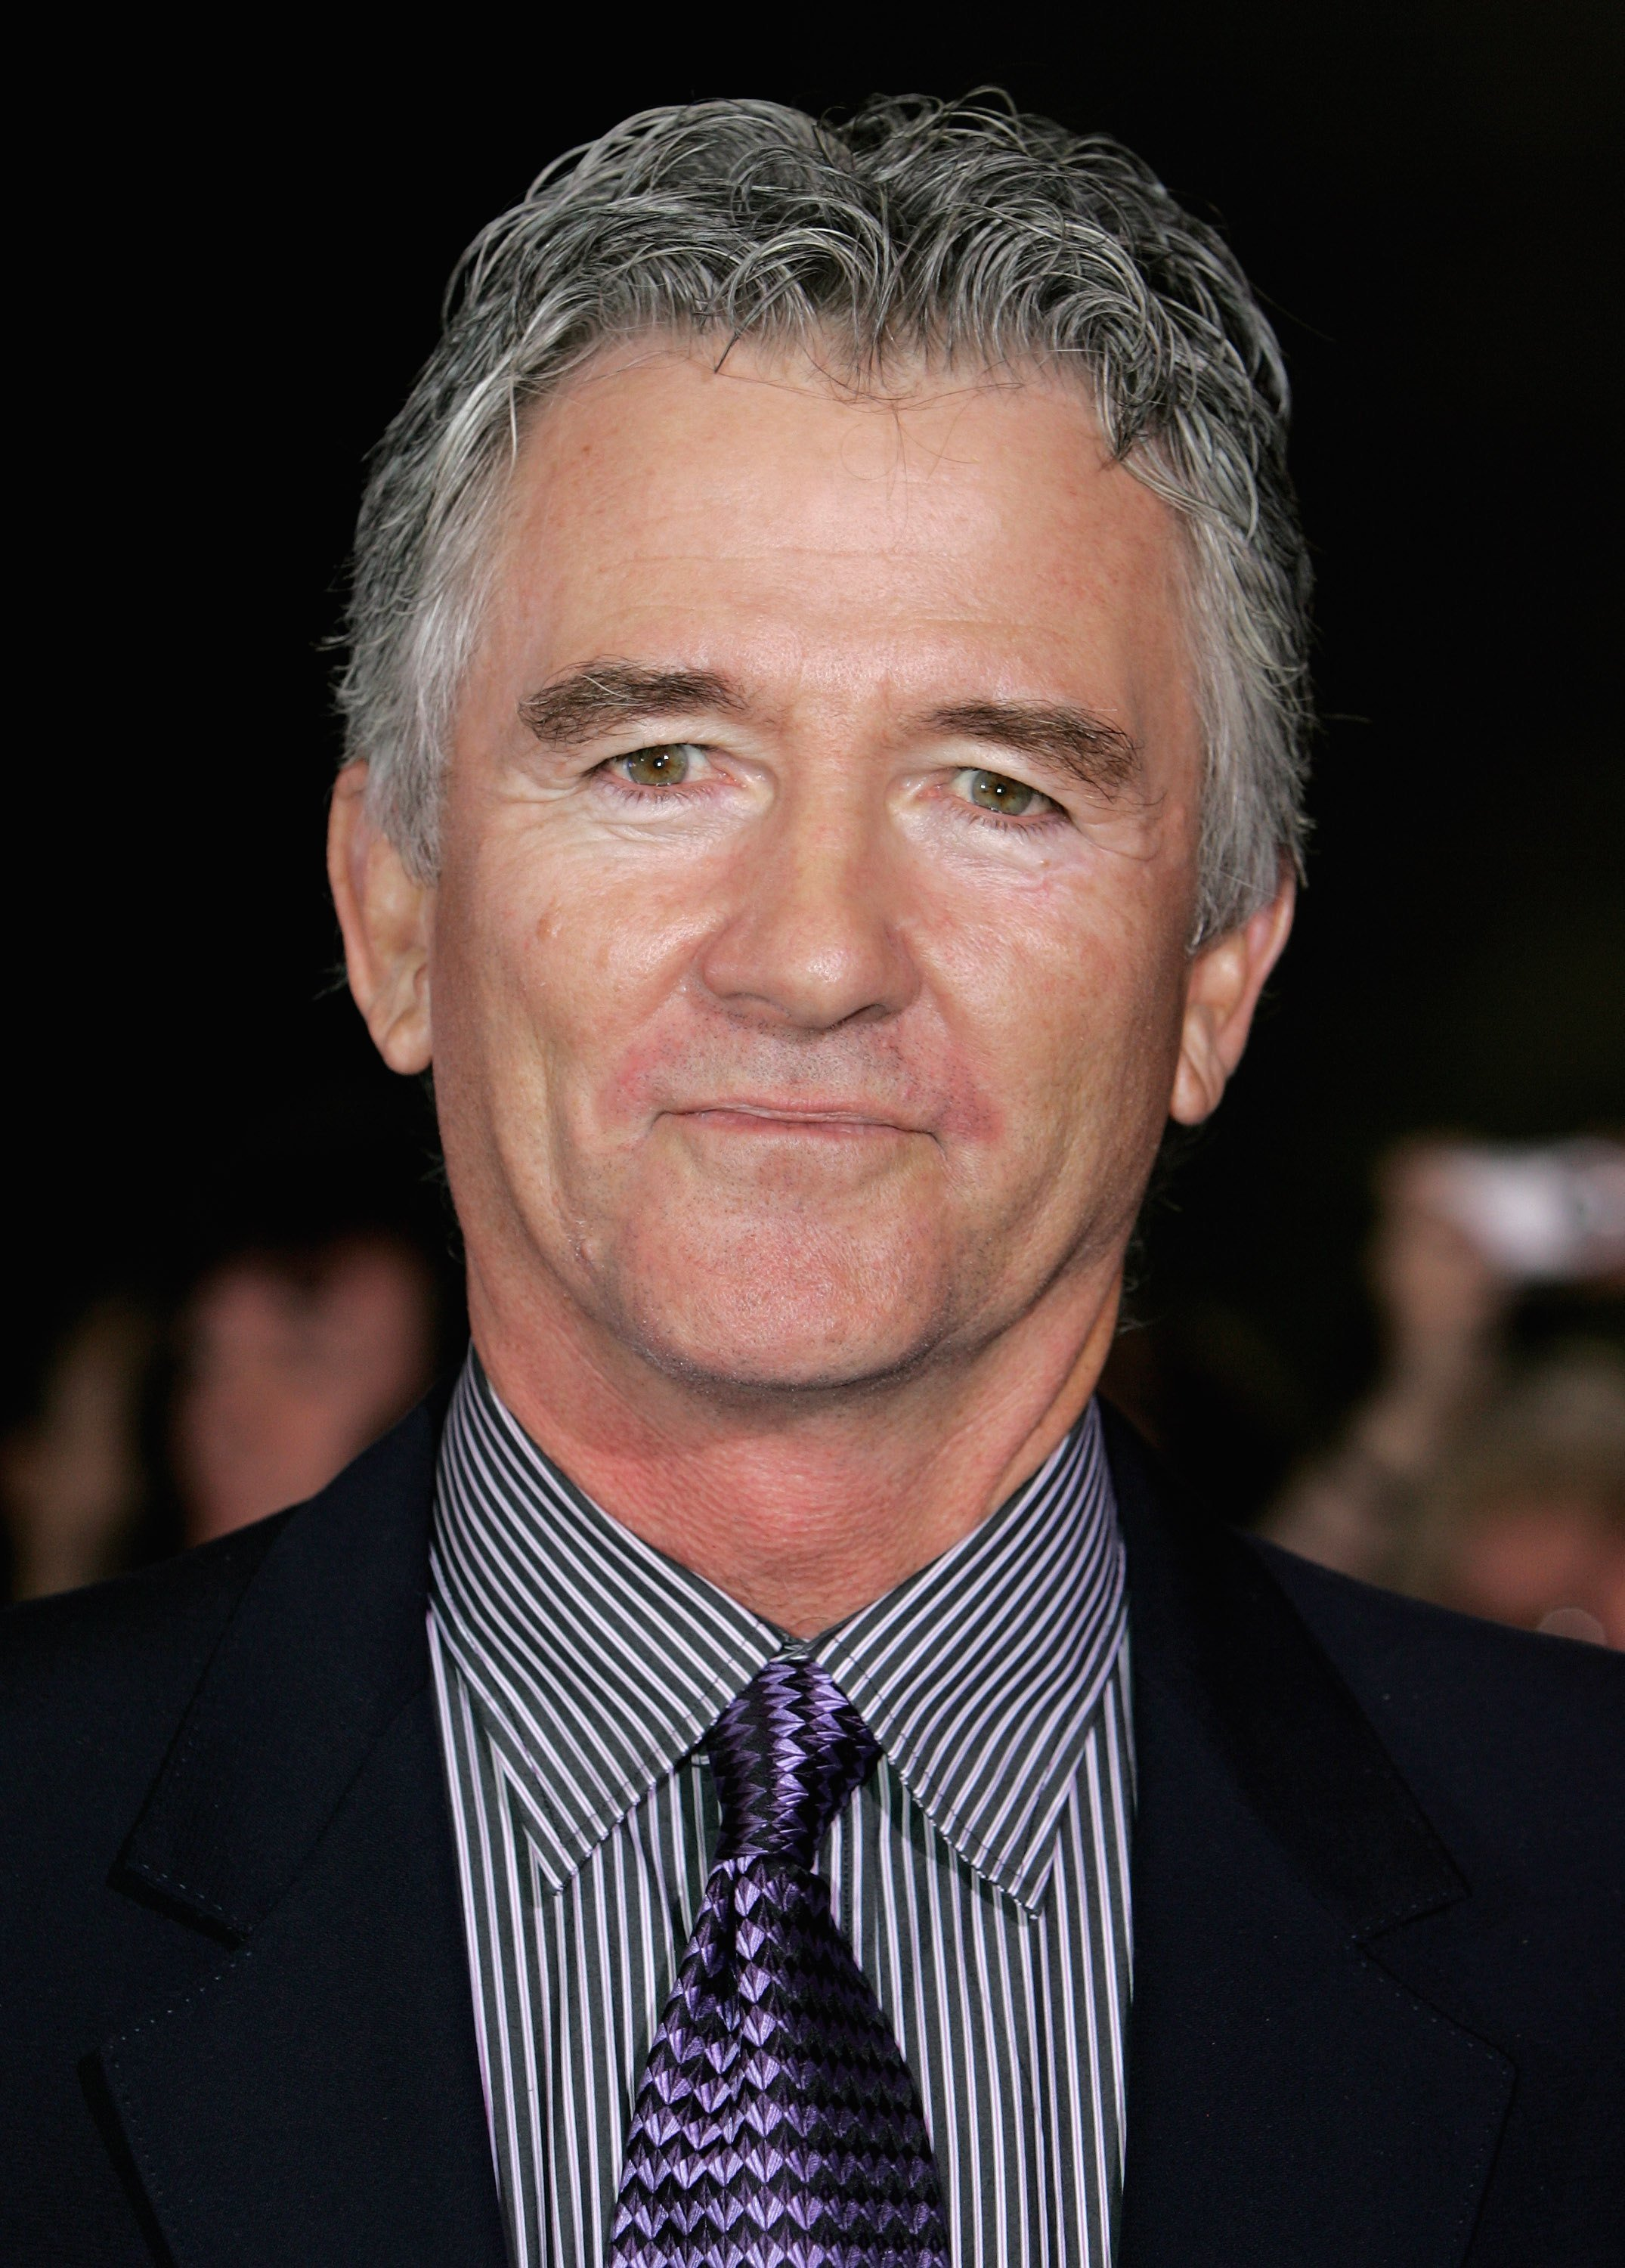 Patrick Duffy on August 26, 2006 in Newport, Wales | Source: Getty Images